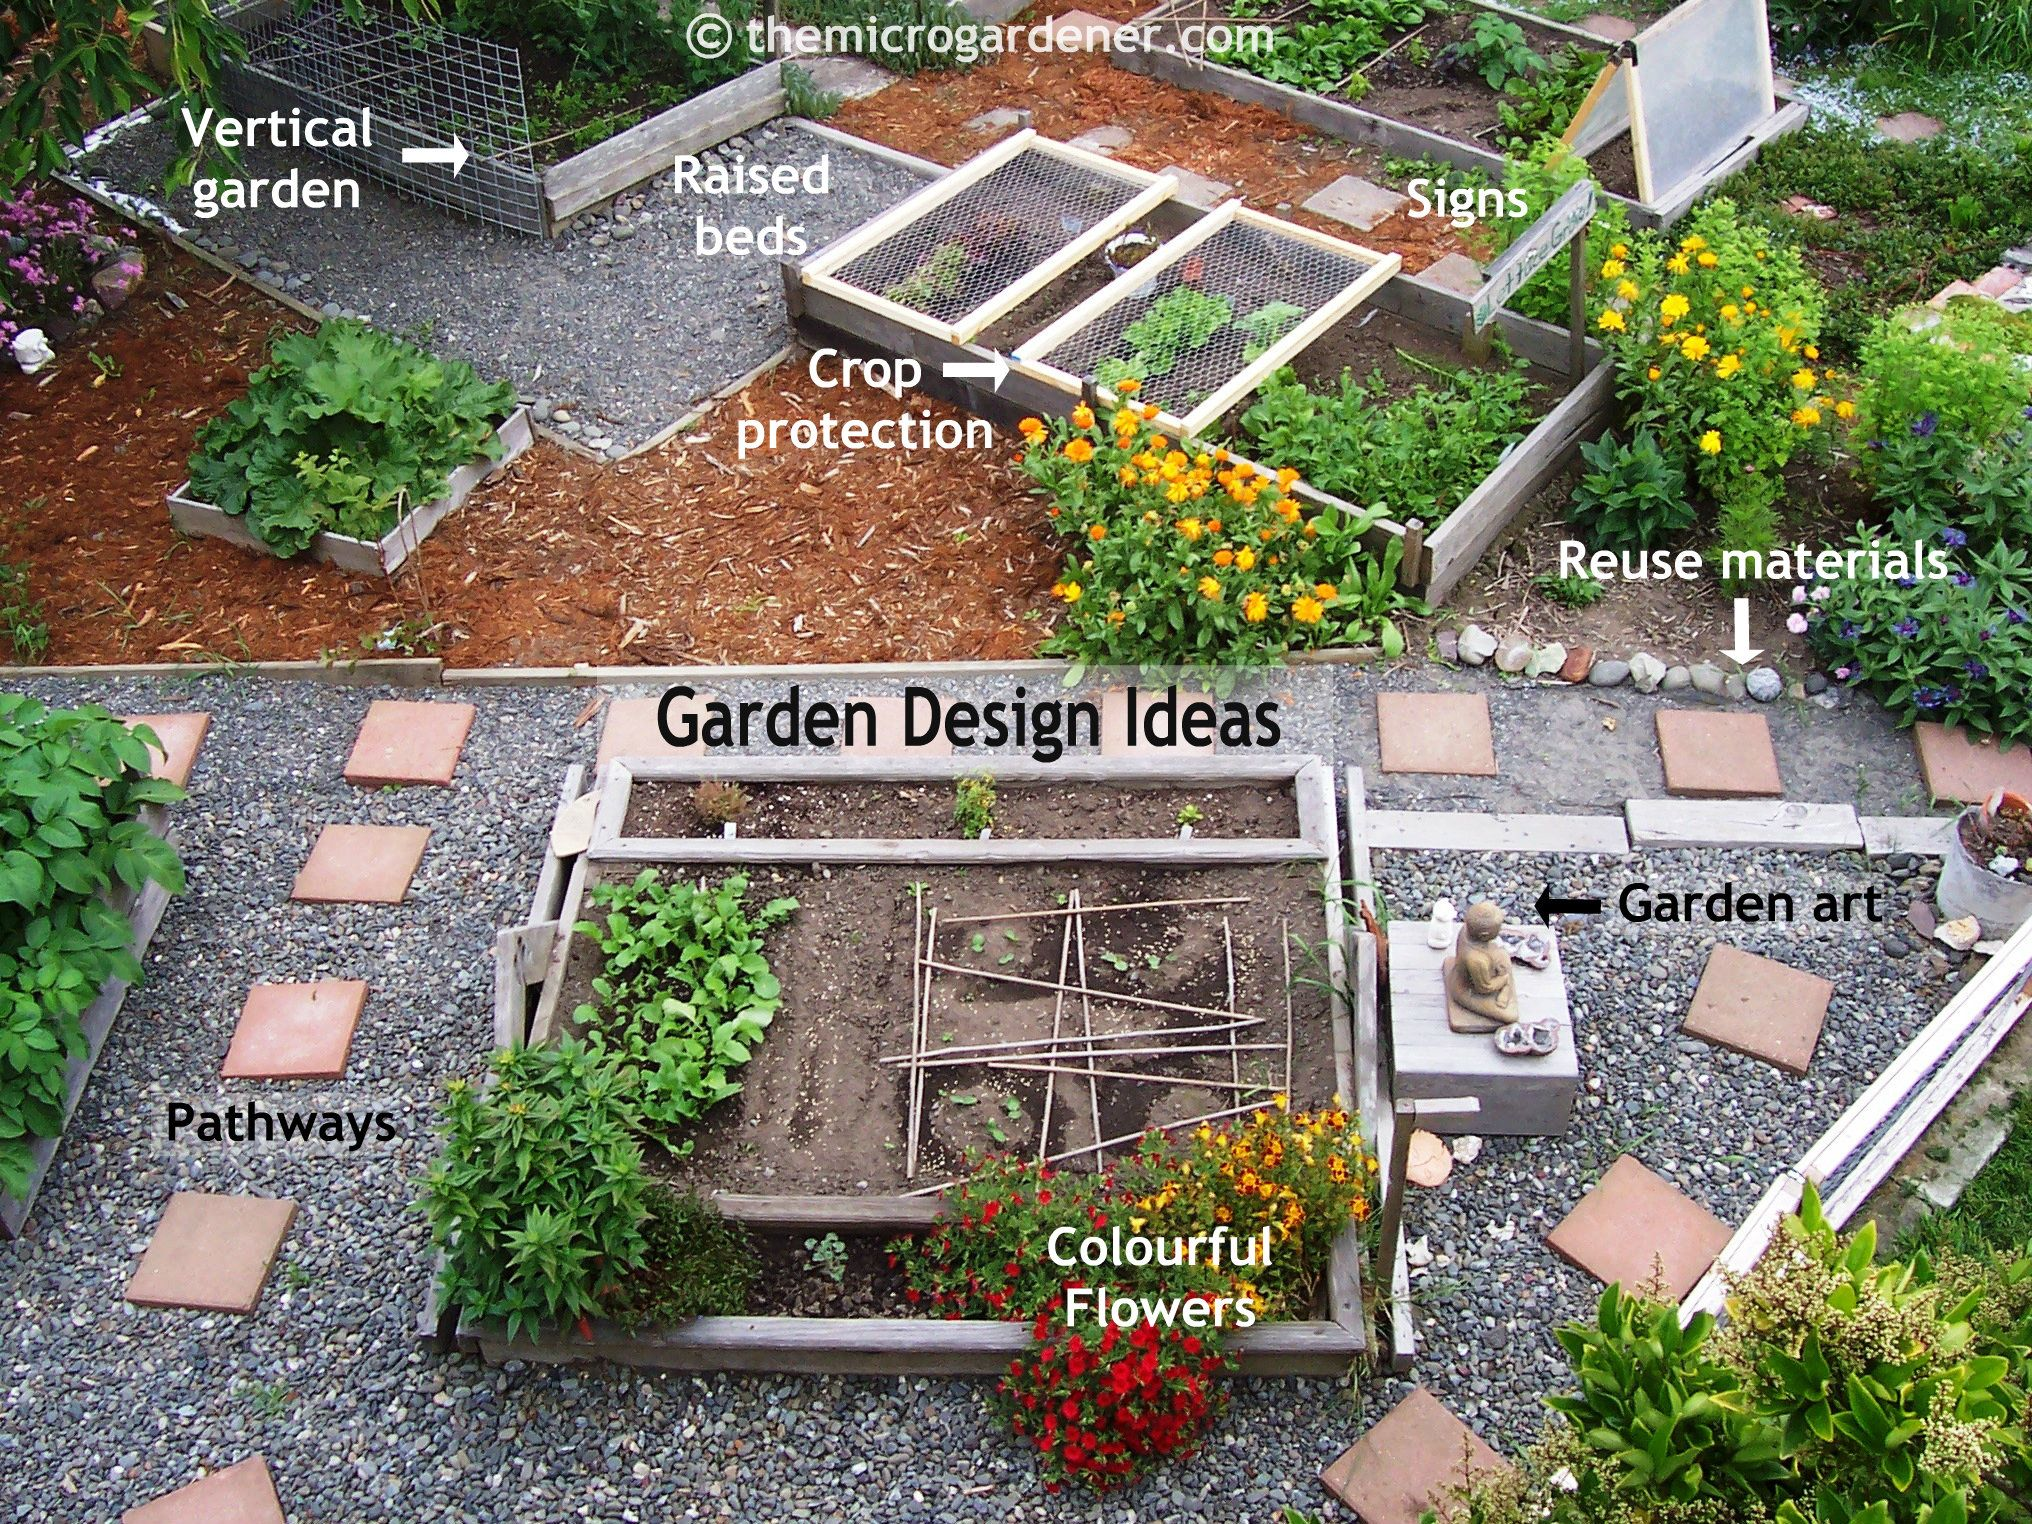 Small garden design ideas on pinterest vertical gardens for Garden ideas and designs